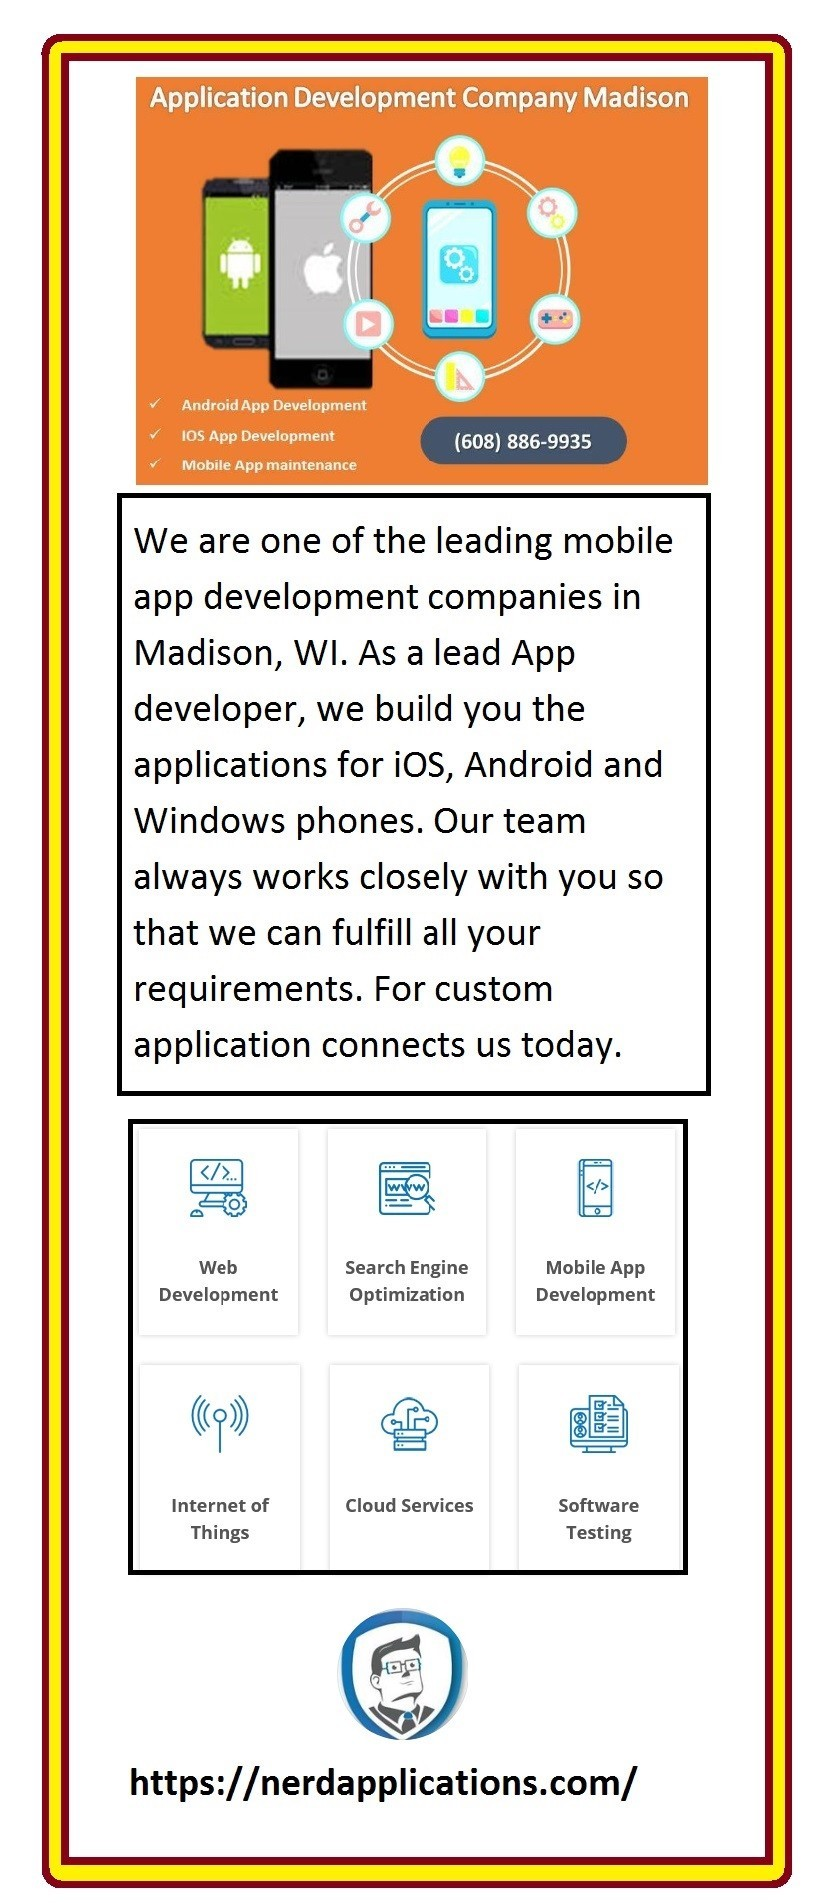 Mobile App Development Company Madison, WI